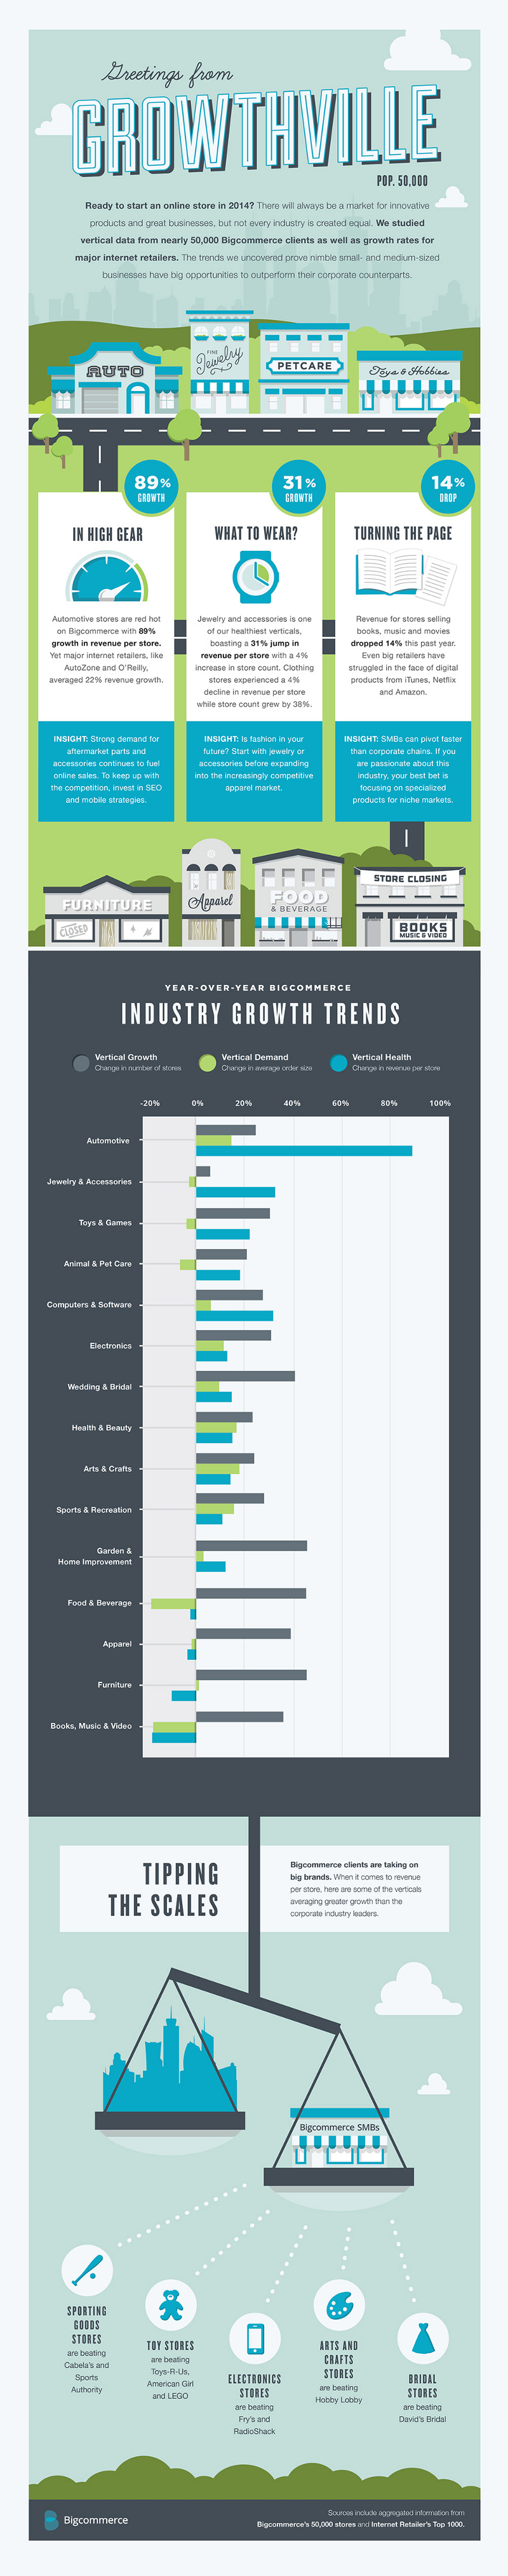 Fastest-Growing-Industries